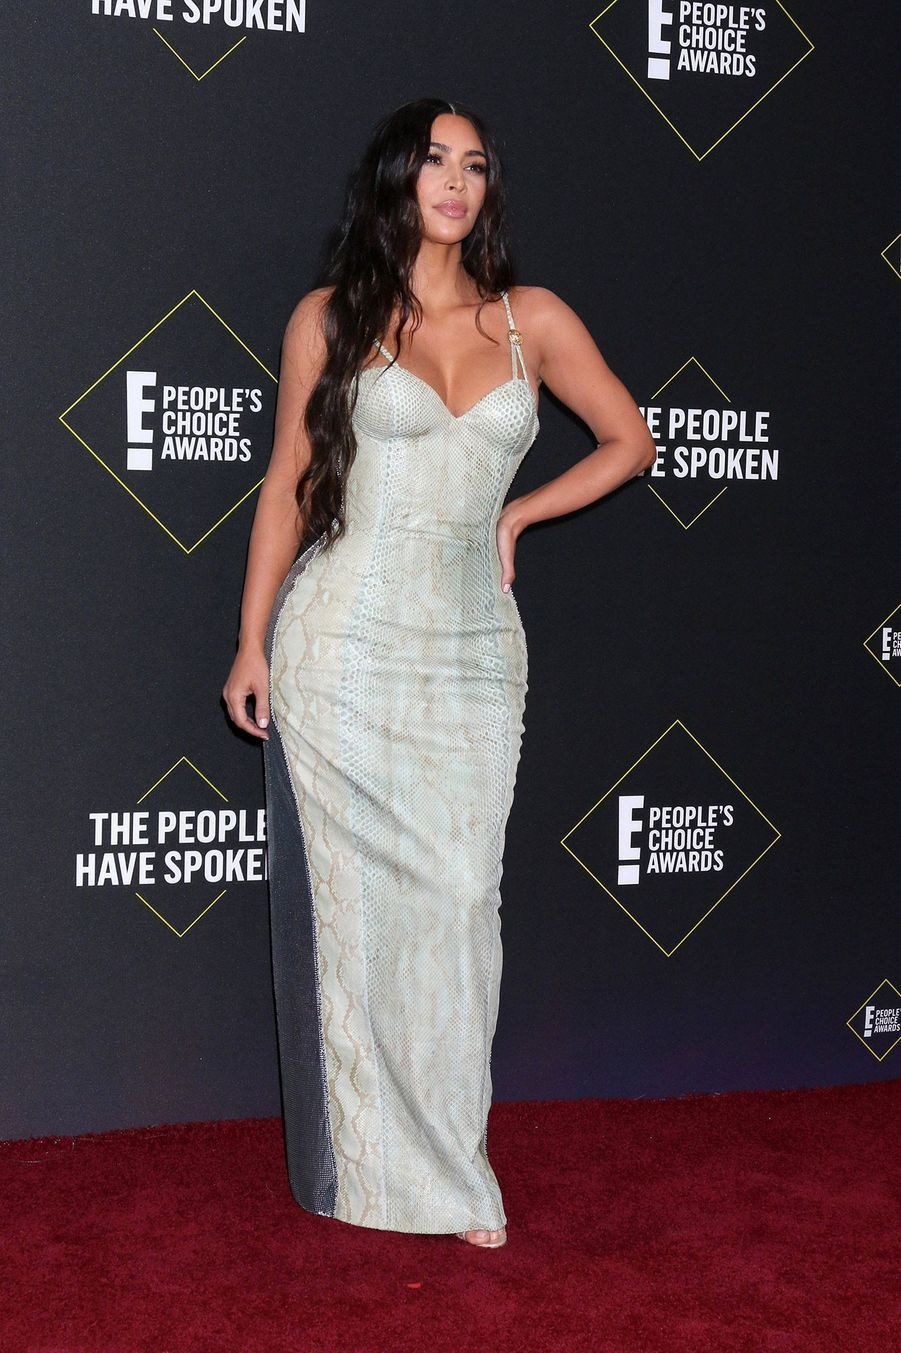 Kim Kardashian à la 45ème cérémonie des People's Choice Awards, à Santa Monica (Californie), le 10 novembre 2019.